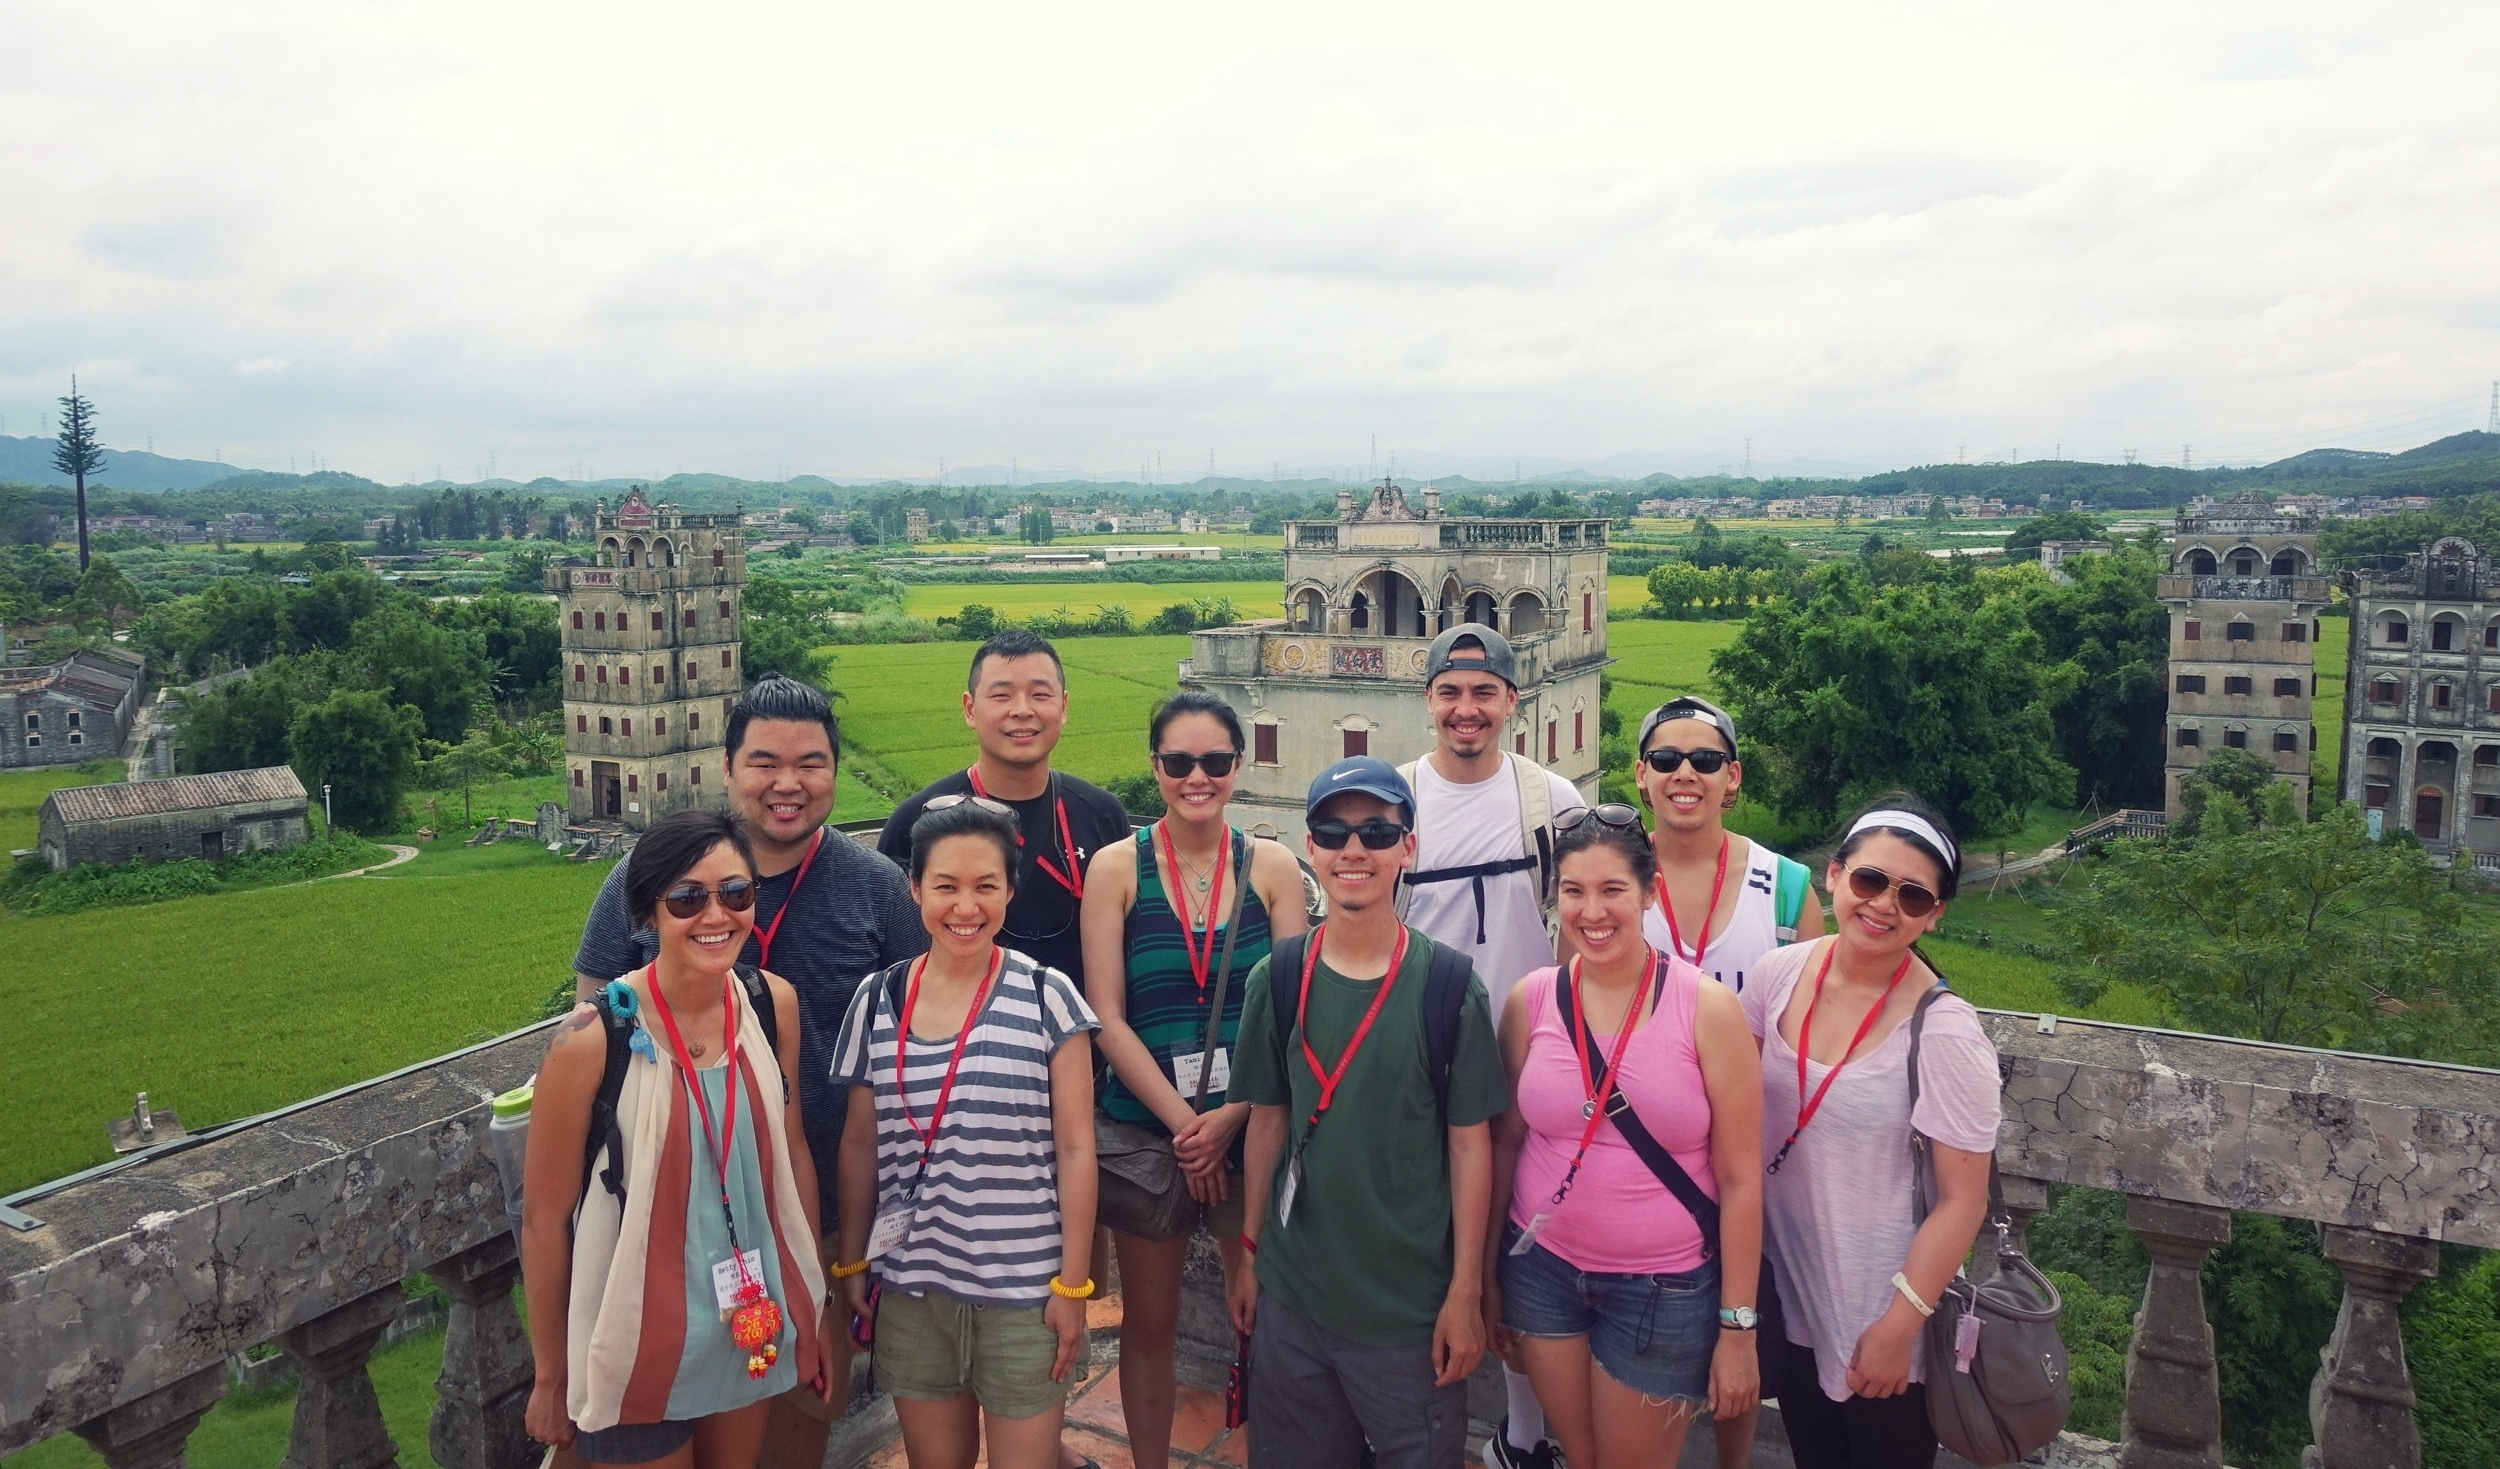 2016 Roots cohort atop one of the UNESCO Watch Towers of Hoiping